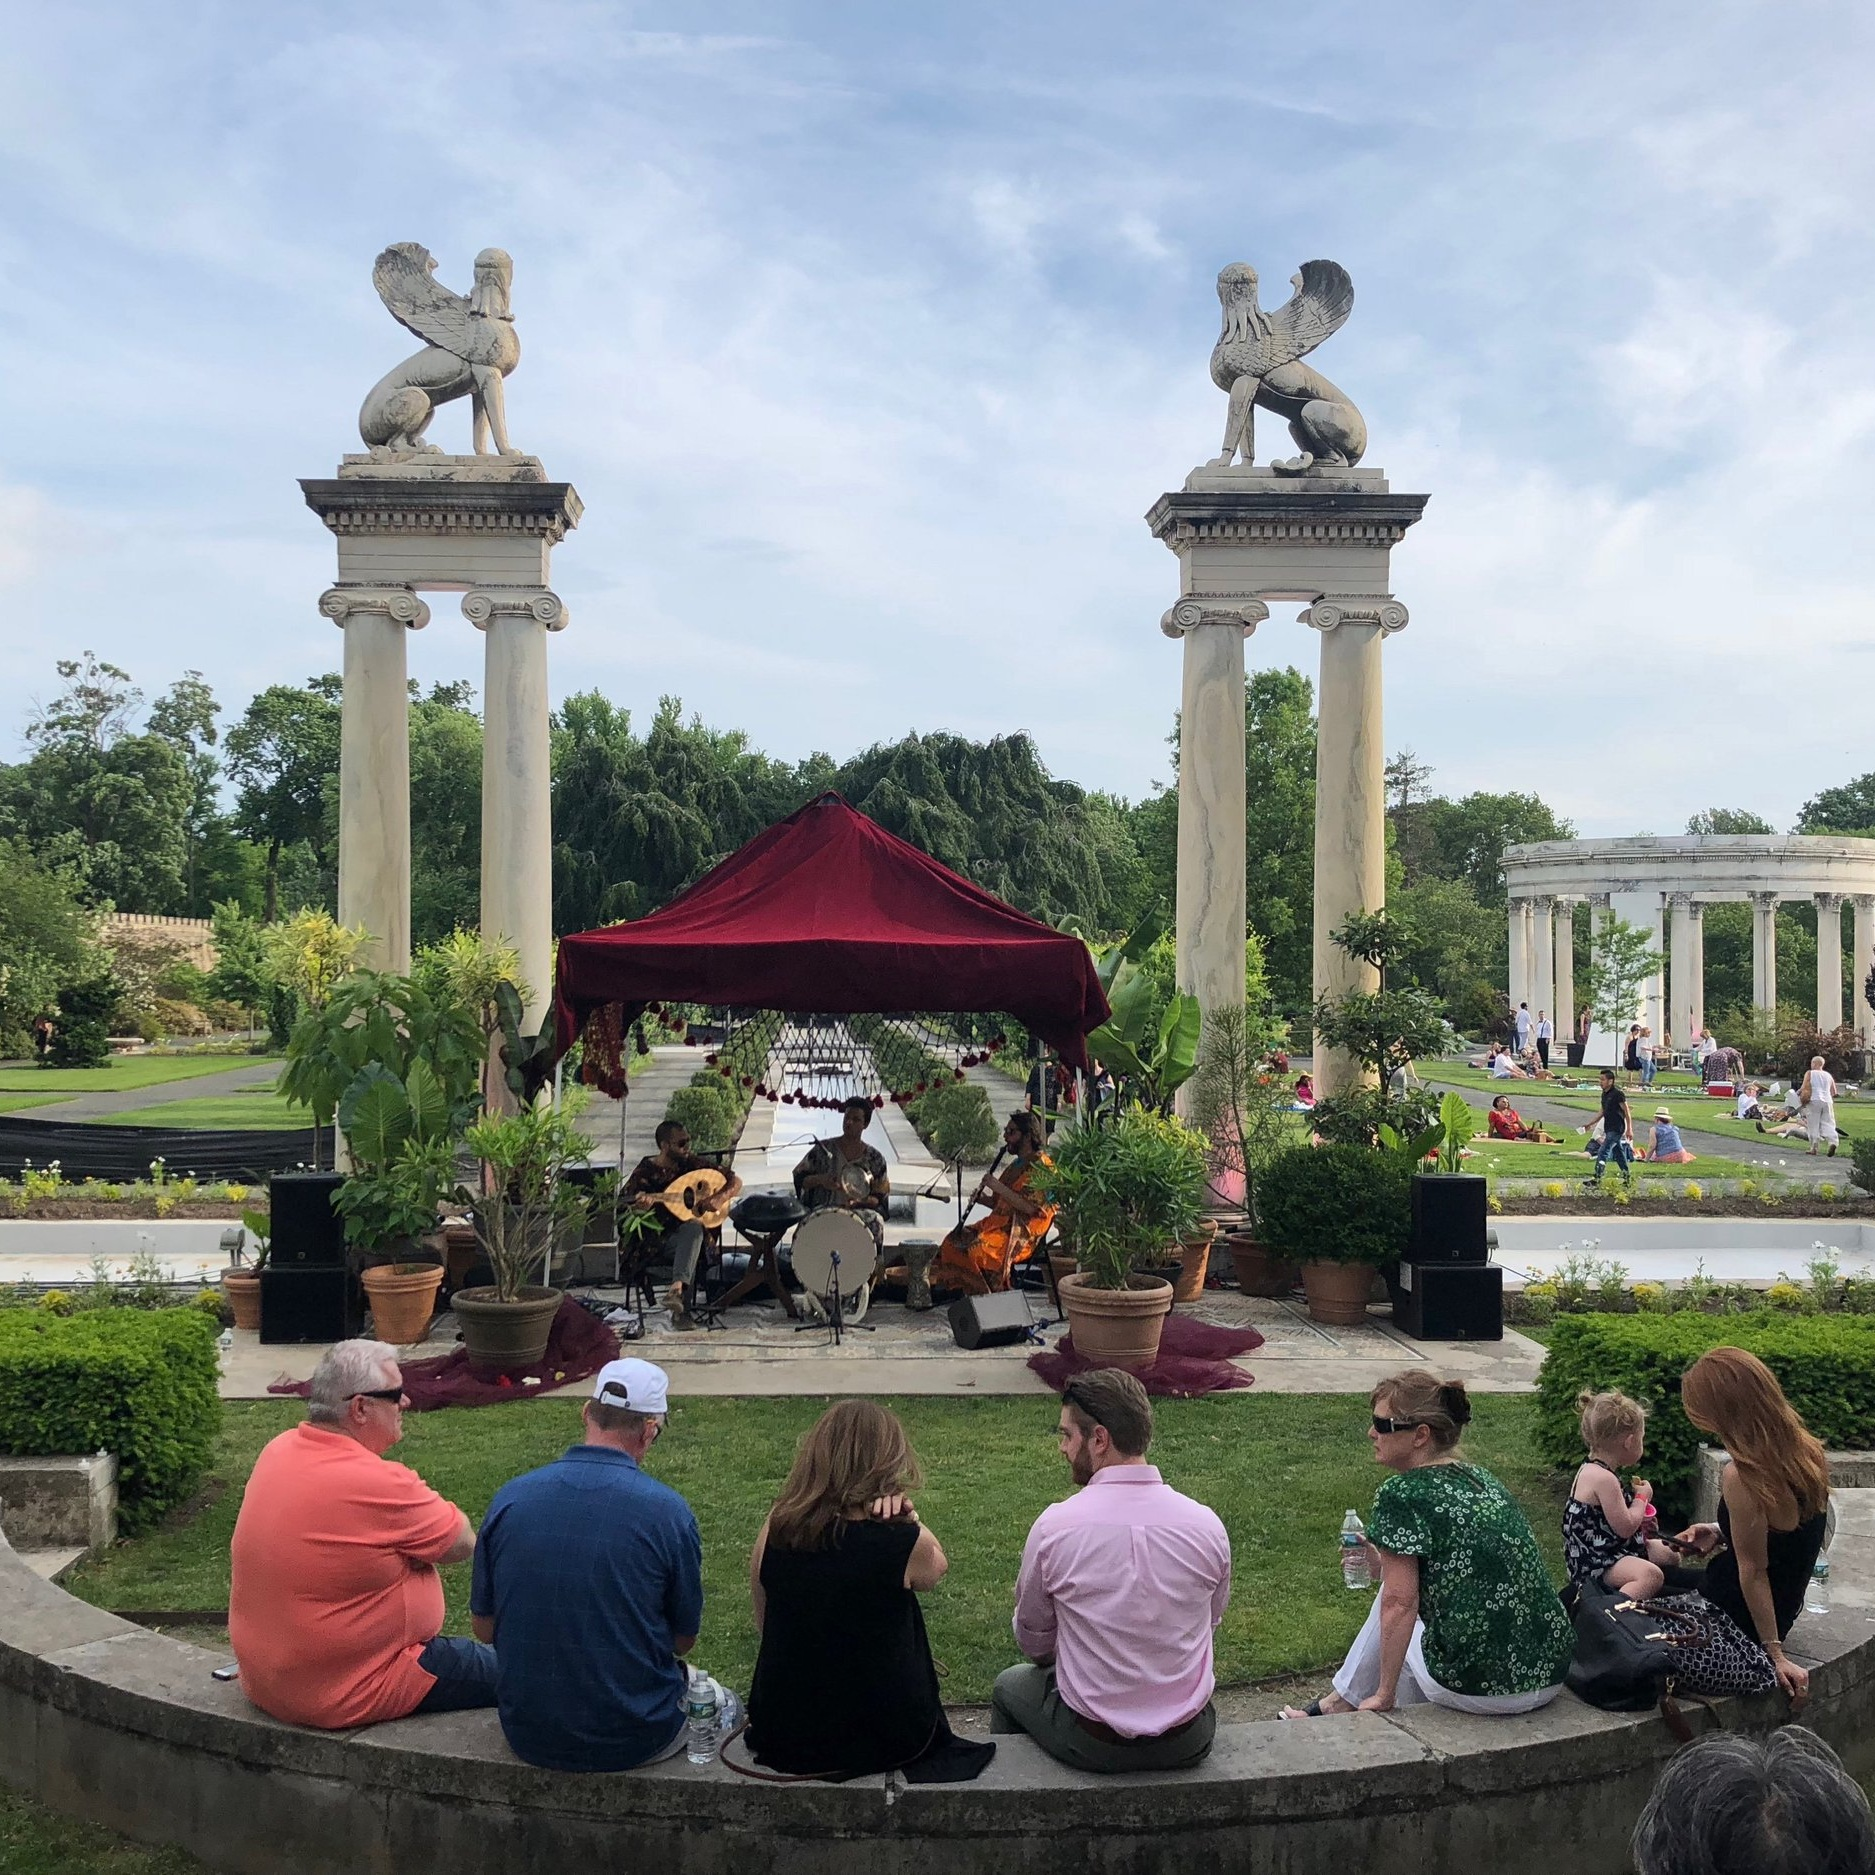 An Evening of Picnicking, Music, and Performance Art at Untermyer Gardens - Looking to escape the city, but not quite up for a rock scramble at Breakneck Ridge or the crowds in Cold Spring? Take the Metro North to Yonkers and make your way to Untermyer Gardens Conservancy, where you can stroll around beautiful parks filled with Roman columns, sphinxes, waterfalls, a walled garden with towers straight out of a fairy tale, and more!. I got to spend an evening at Untermyer after hours for the second annual Great Forgotten Garden Party produced by Atlas Obscura…